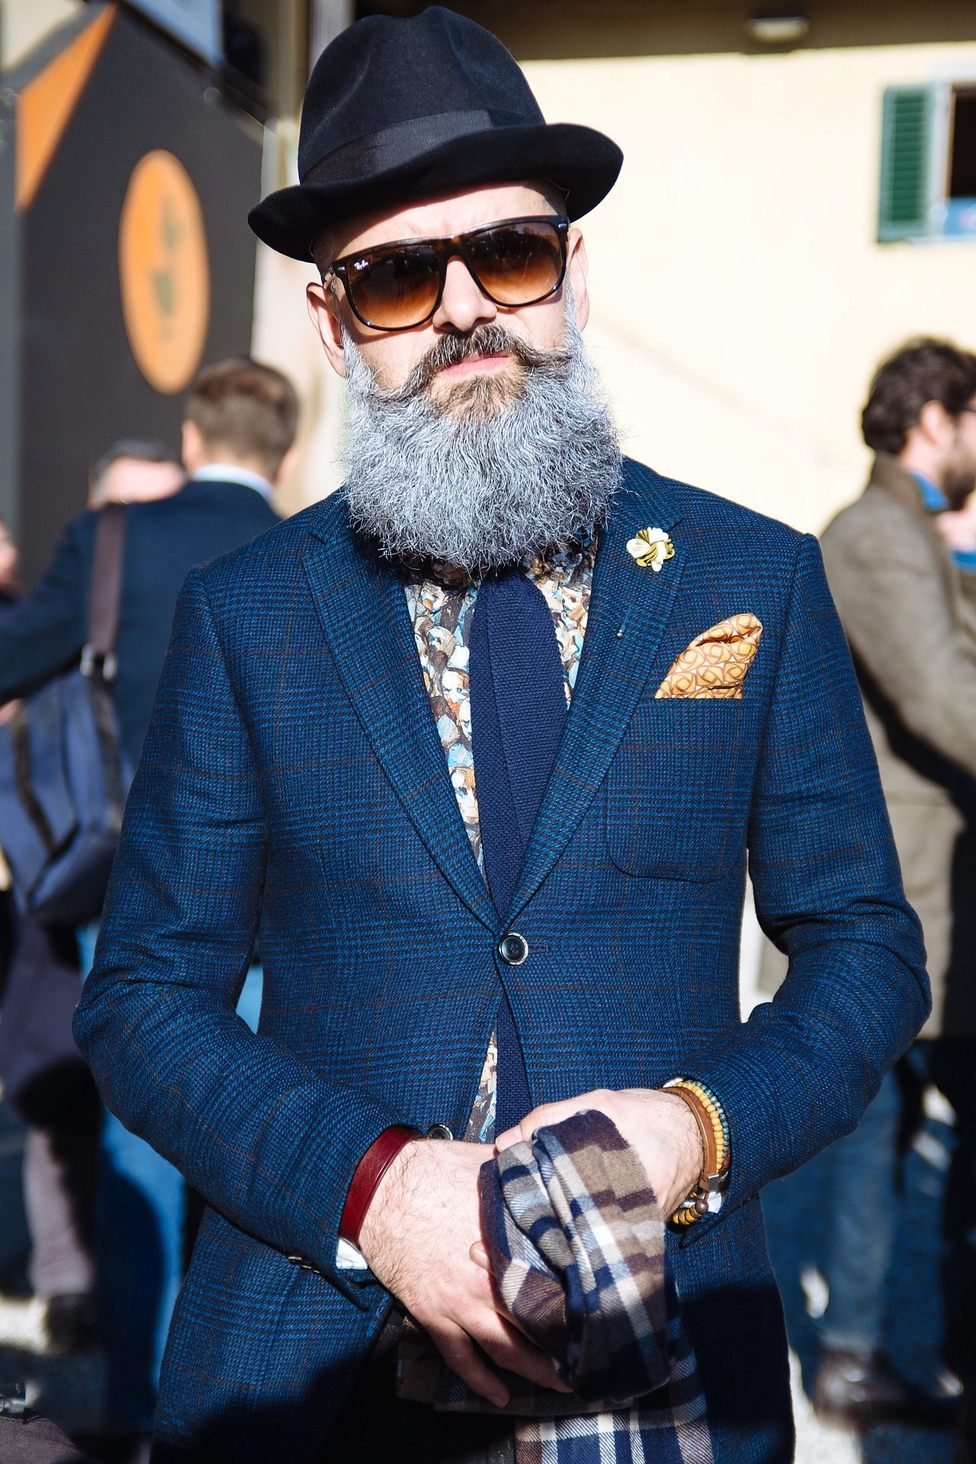 Firenze-89-Pitti-Uomo-Fashion-Photography-25